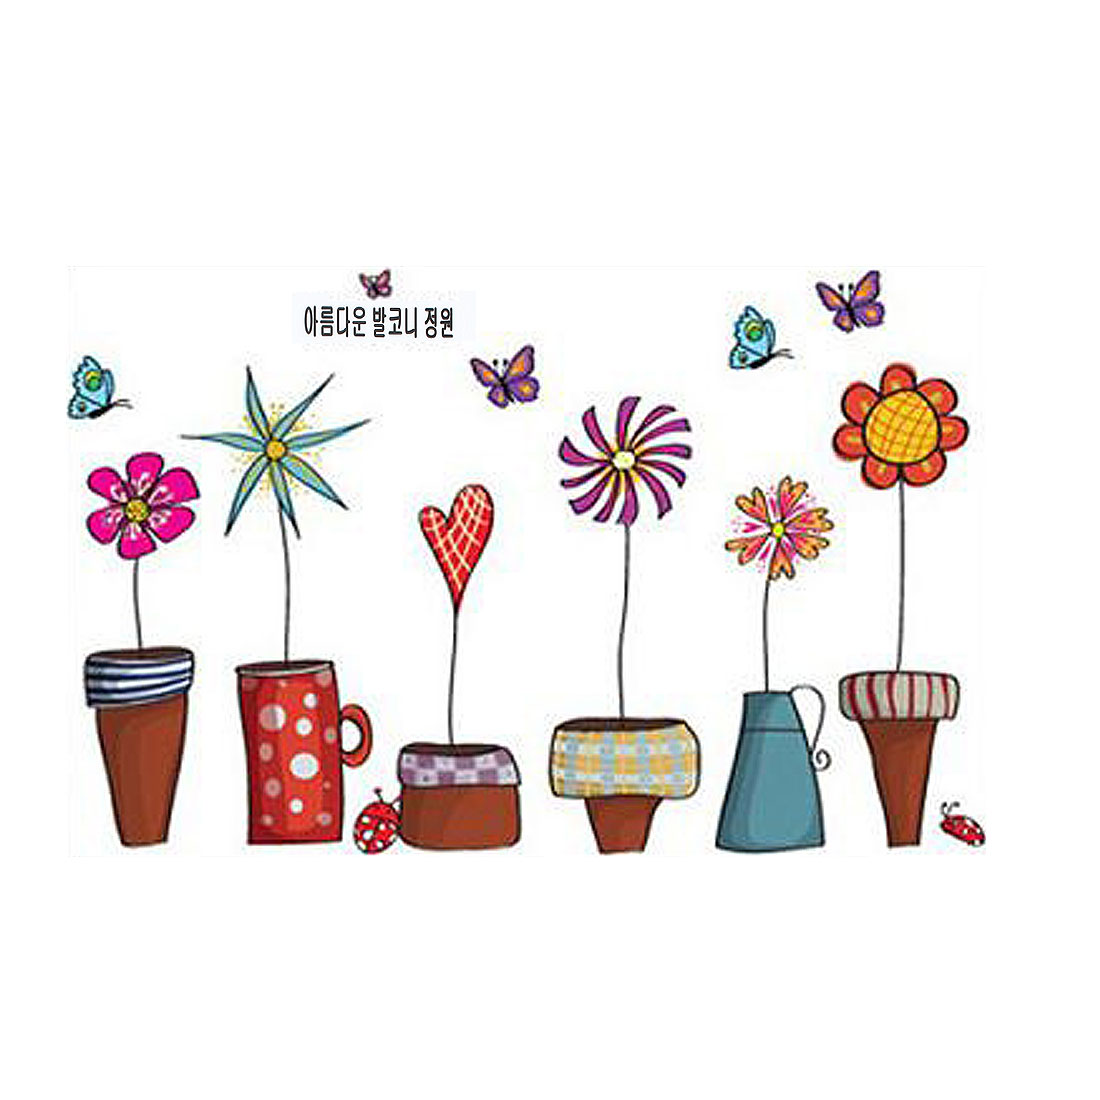 Colorful Home Room Decor DIY Removable Flowers Butterflies Pattern Wall Sticker Decal